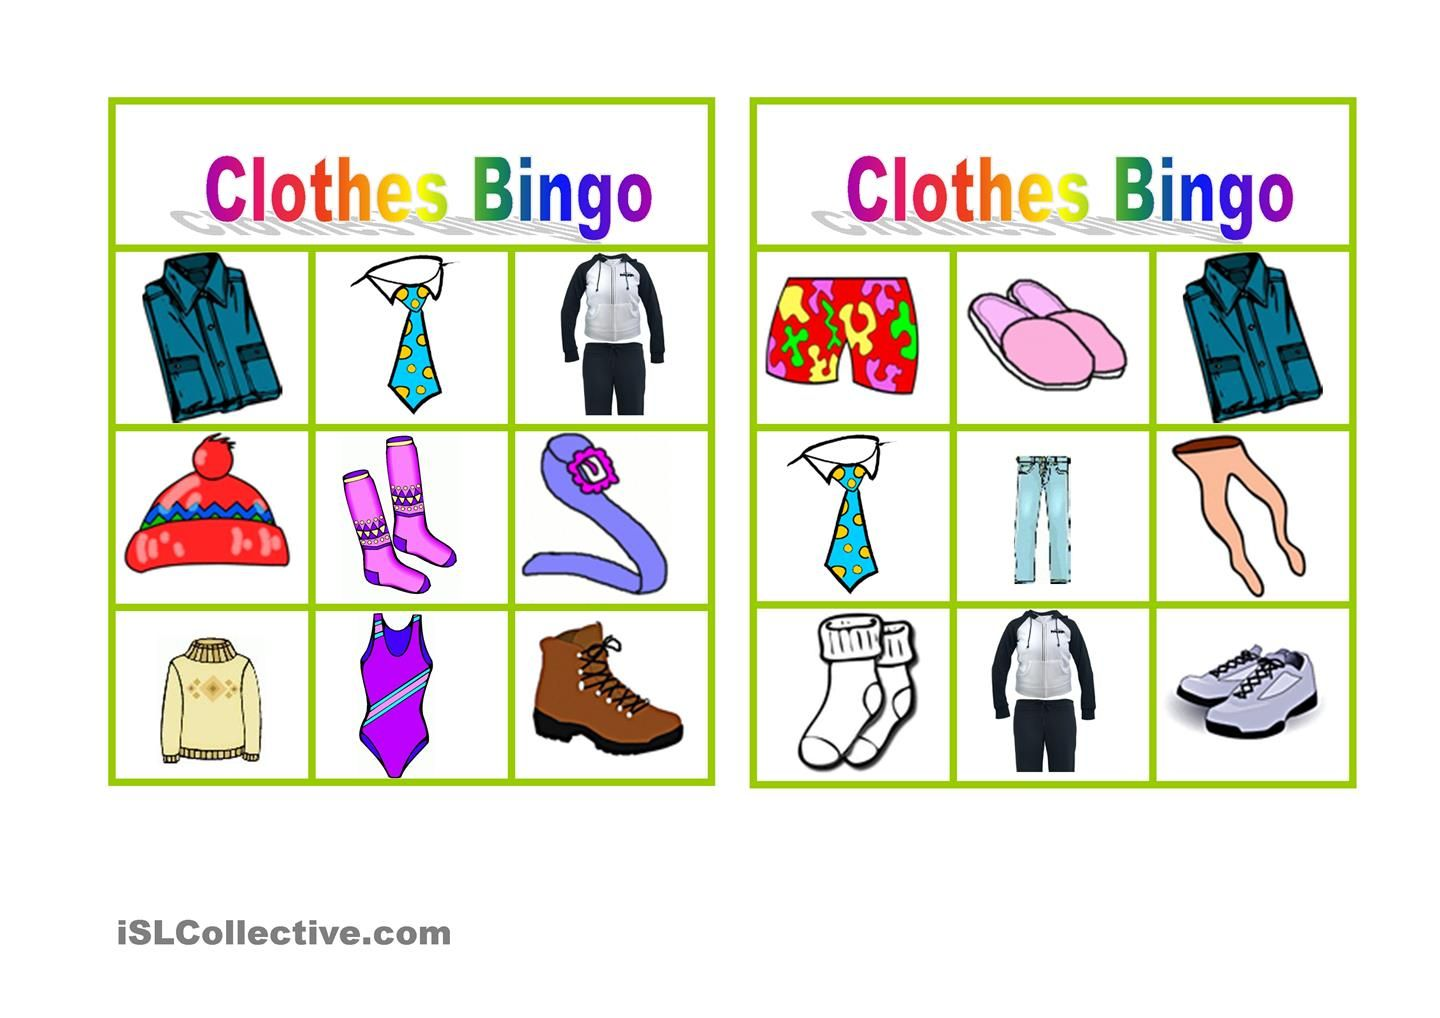 Clothes Bingo Anglictina4 Pinterest Bingo Bingo Games A Clothes